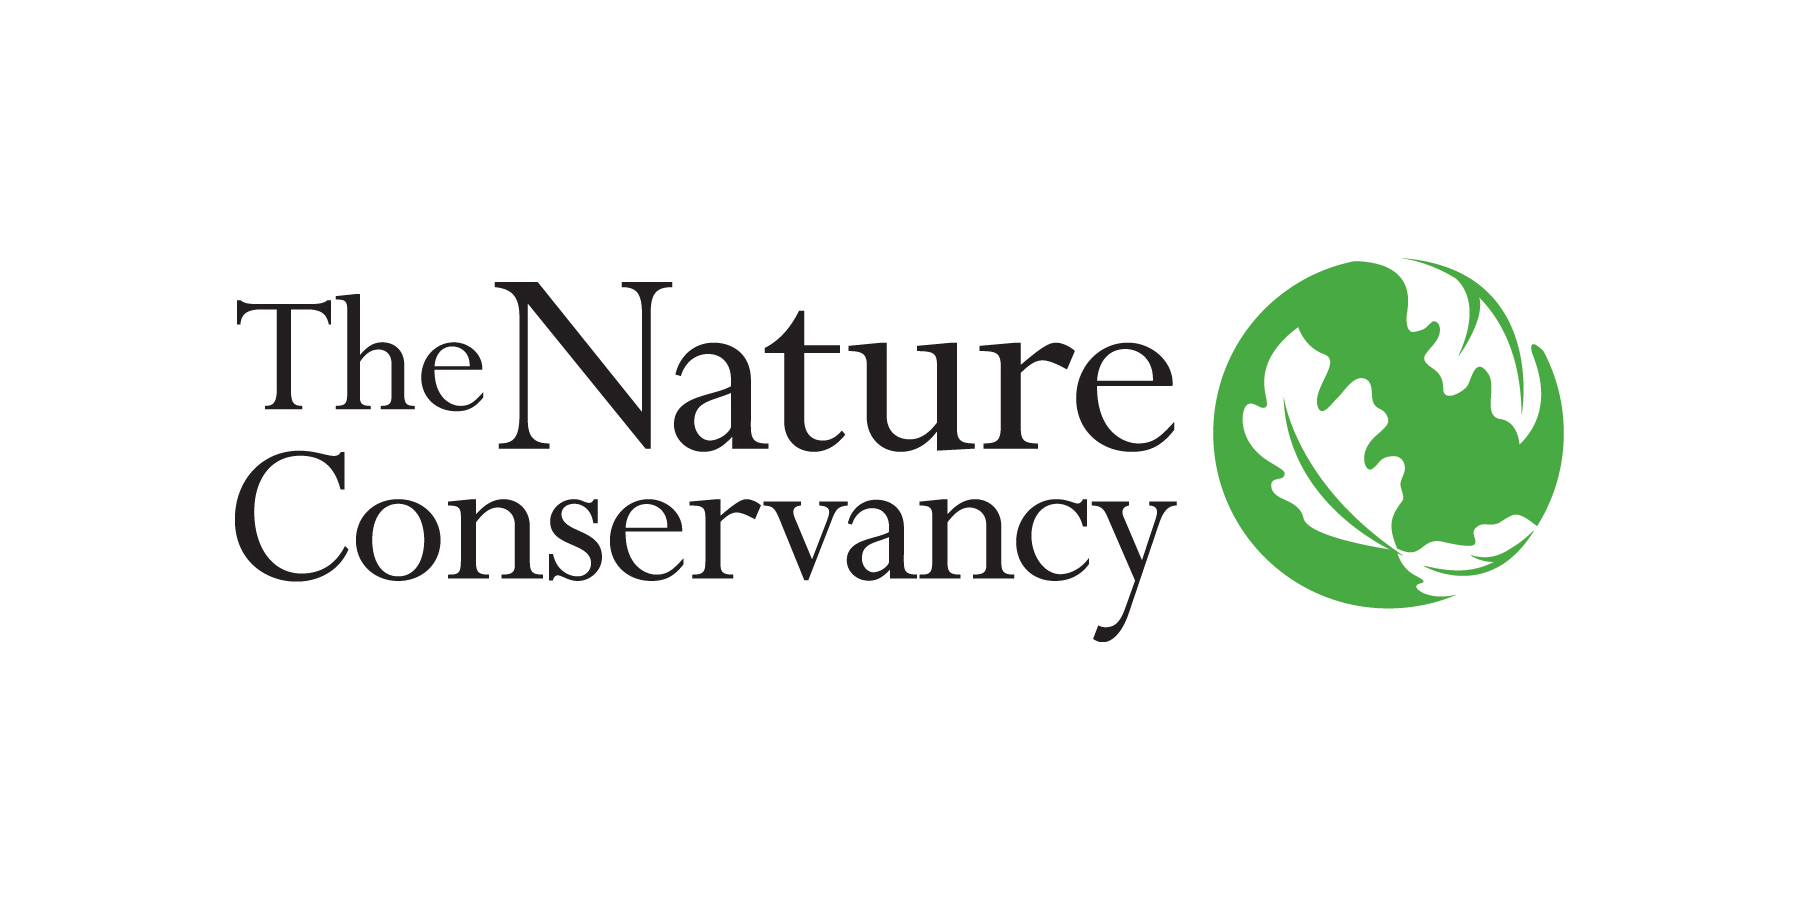 The Nature Conservancy's Global Photo Contest